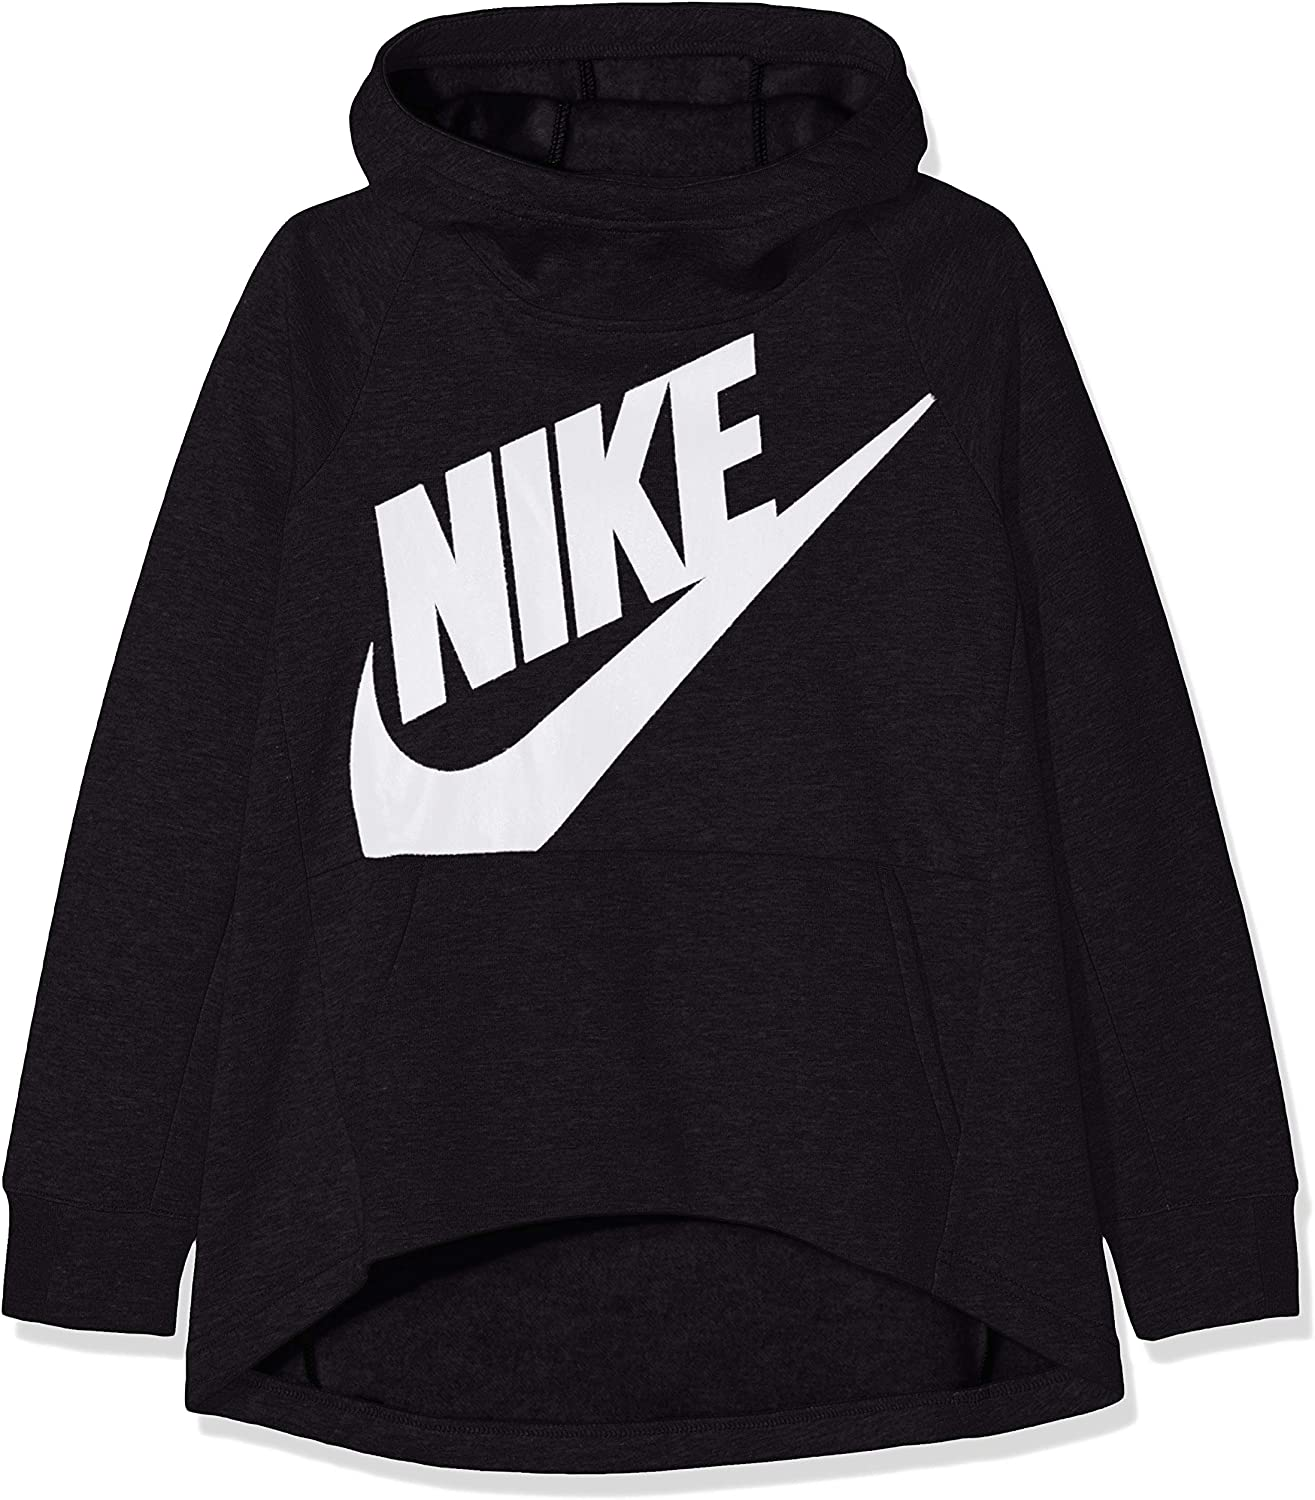 Pullover Hoodie Black/White Size Small